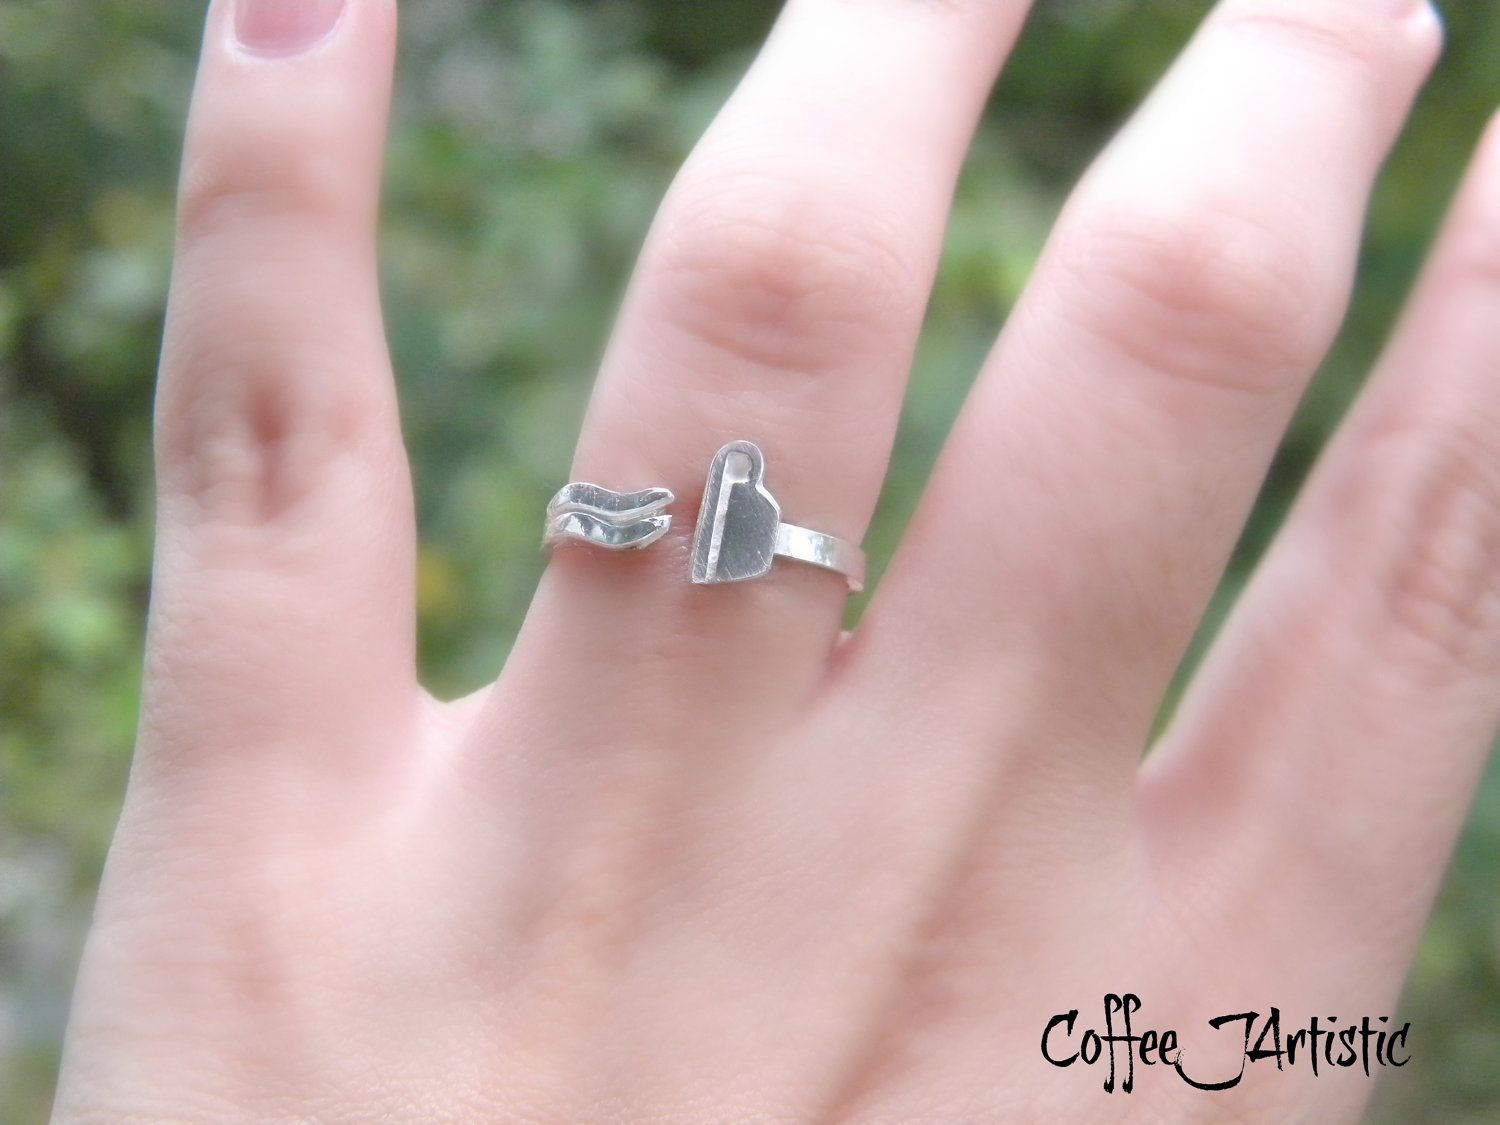 Coffee Lover\'s ring Silver 925 by CoffeeJArtistic on Etsy, $25.00 ...